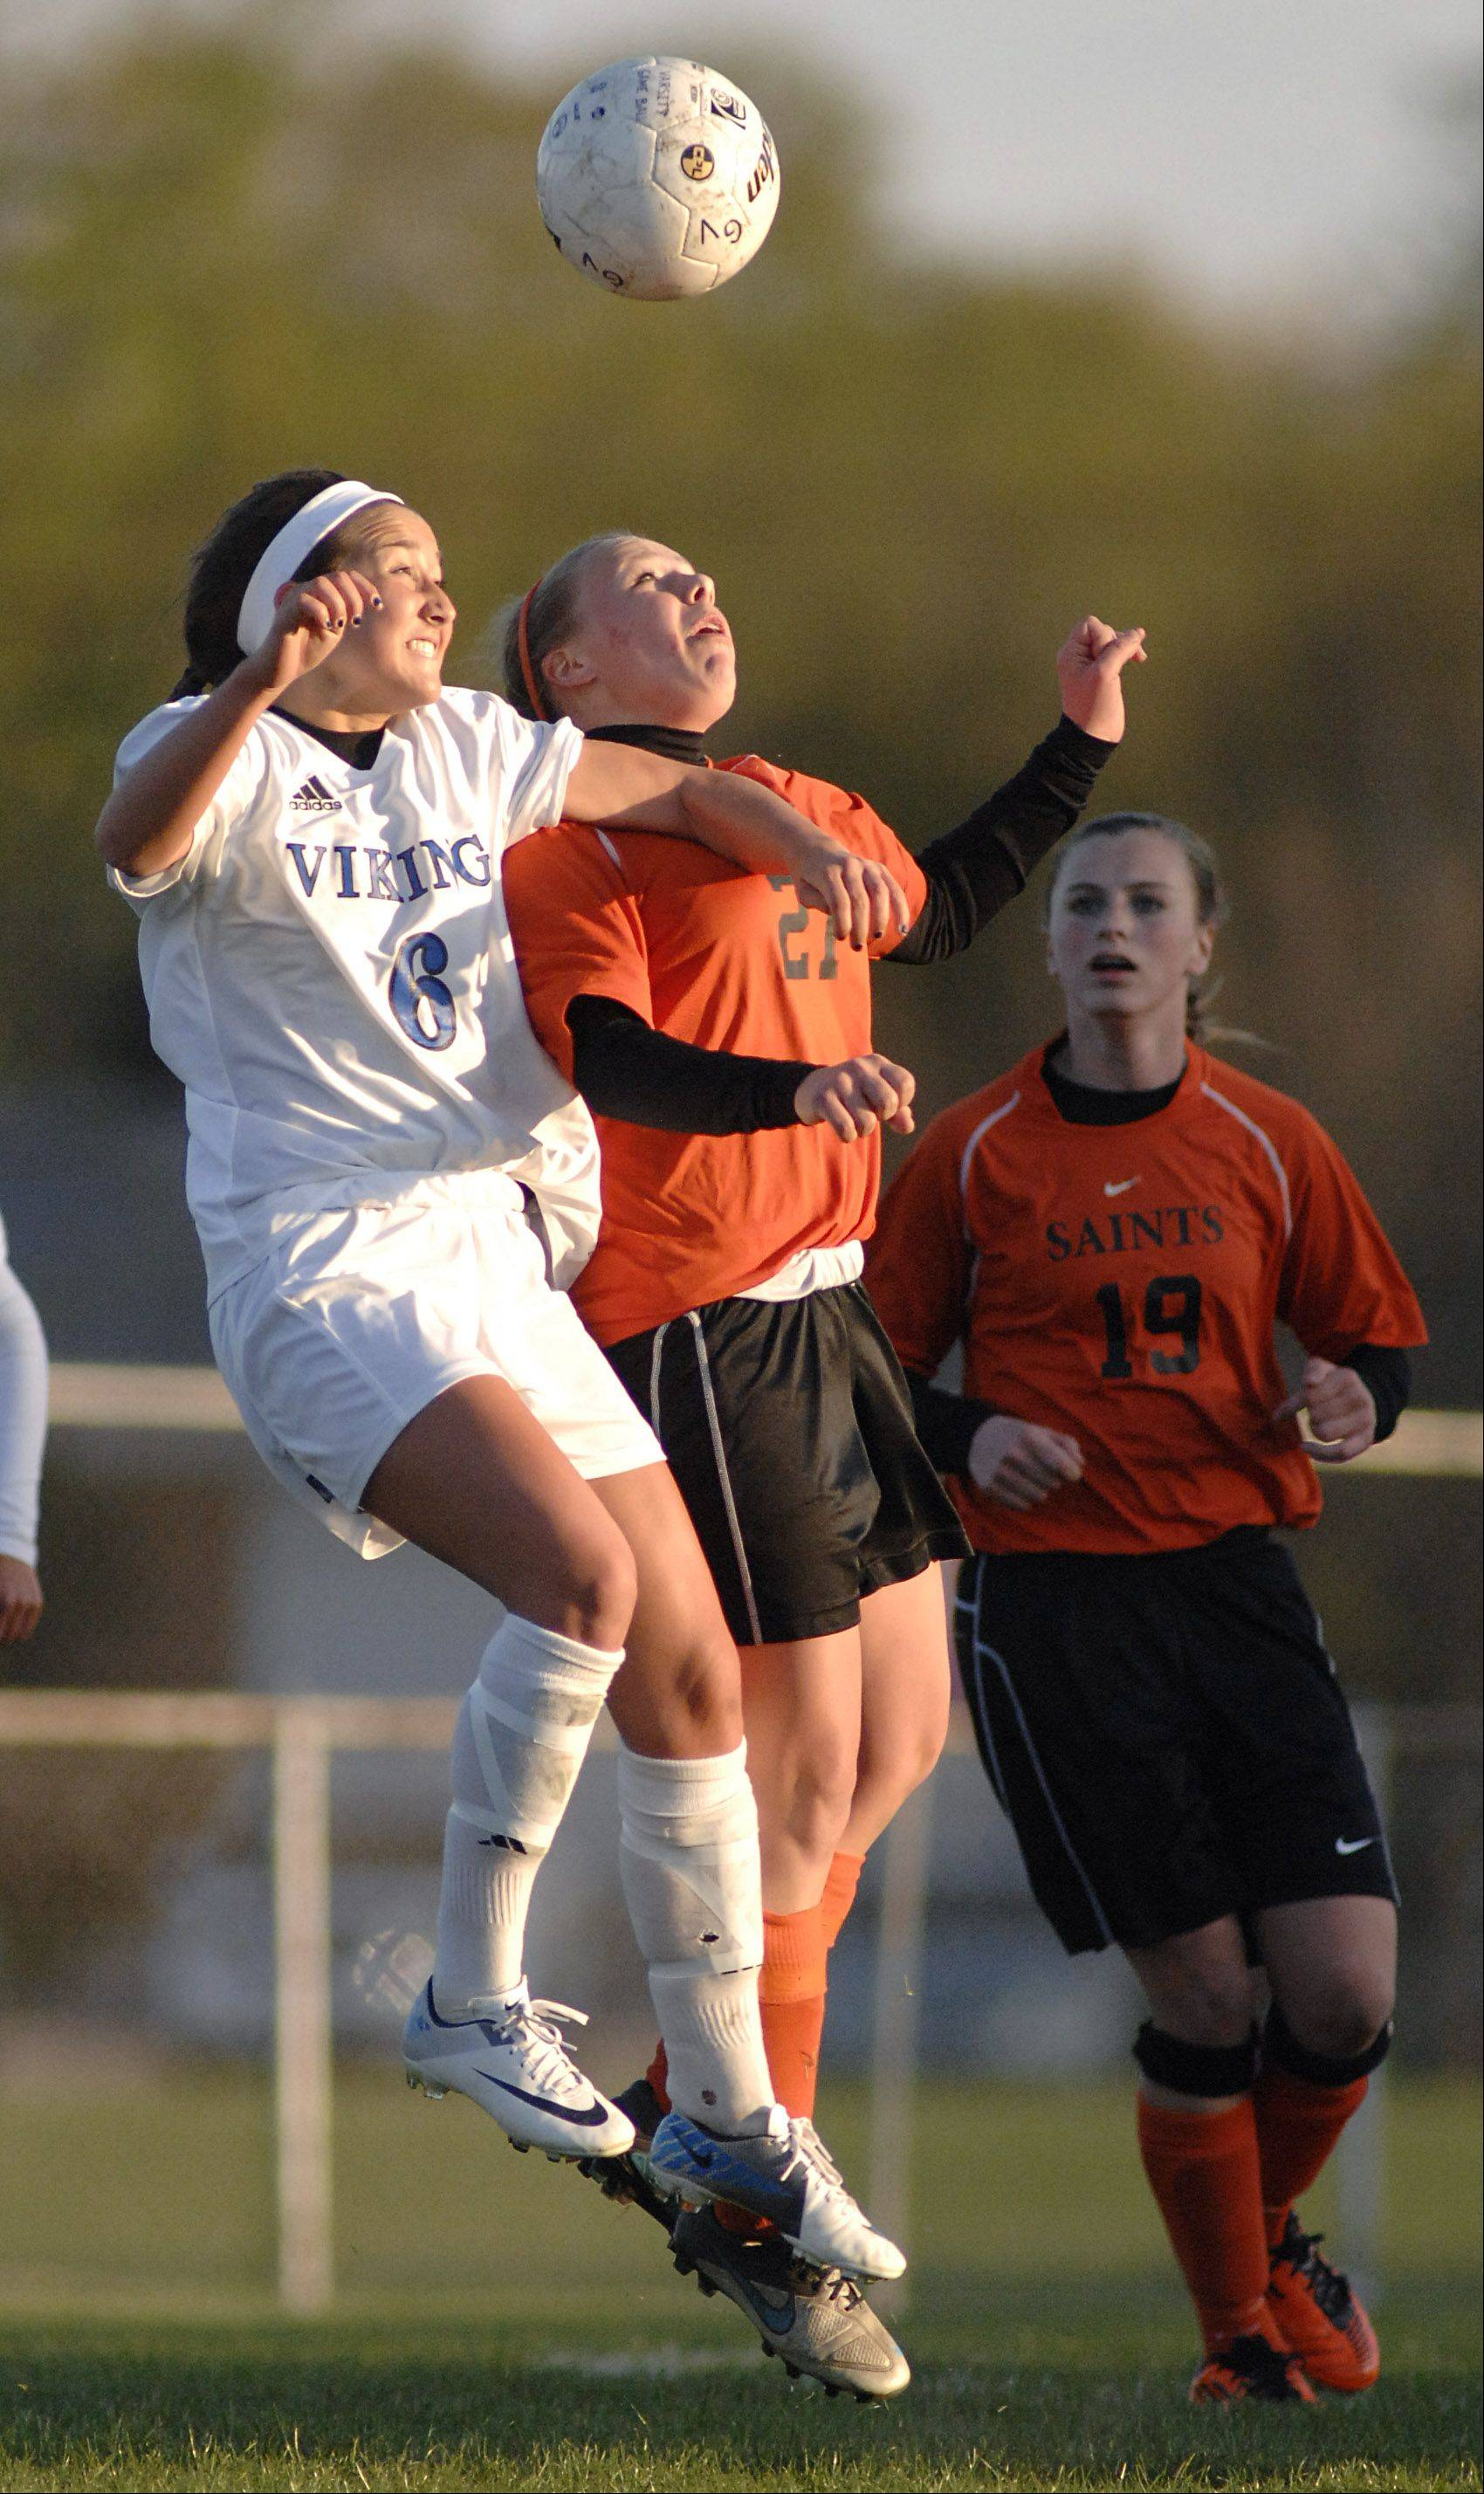 St. Charles East's Amanda Hilton and Geneva's Catherine Allon go for the ball.